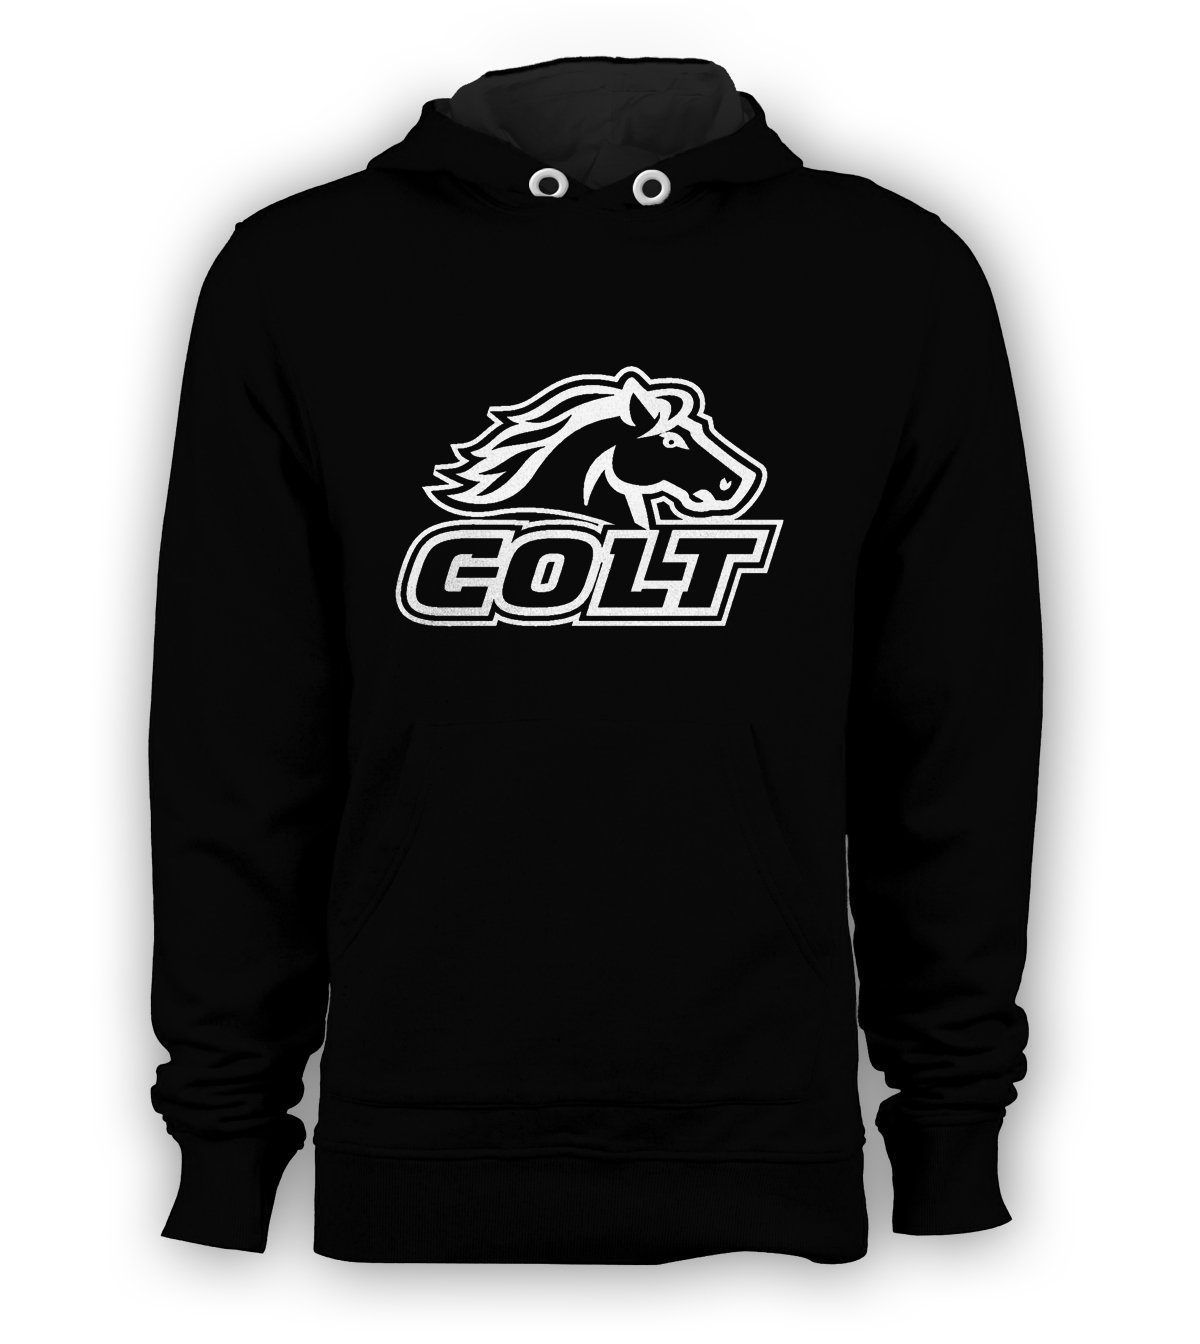 Colt Firearms Horse Logo Pullover Hoodie Men Sweatshirts Size S to 3XL New Black